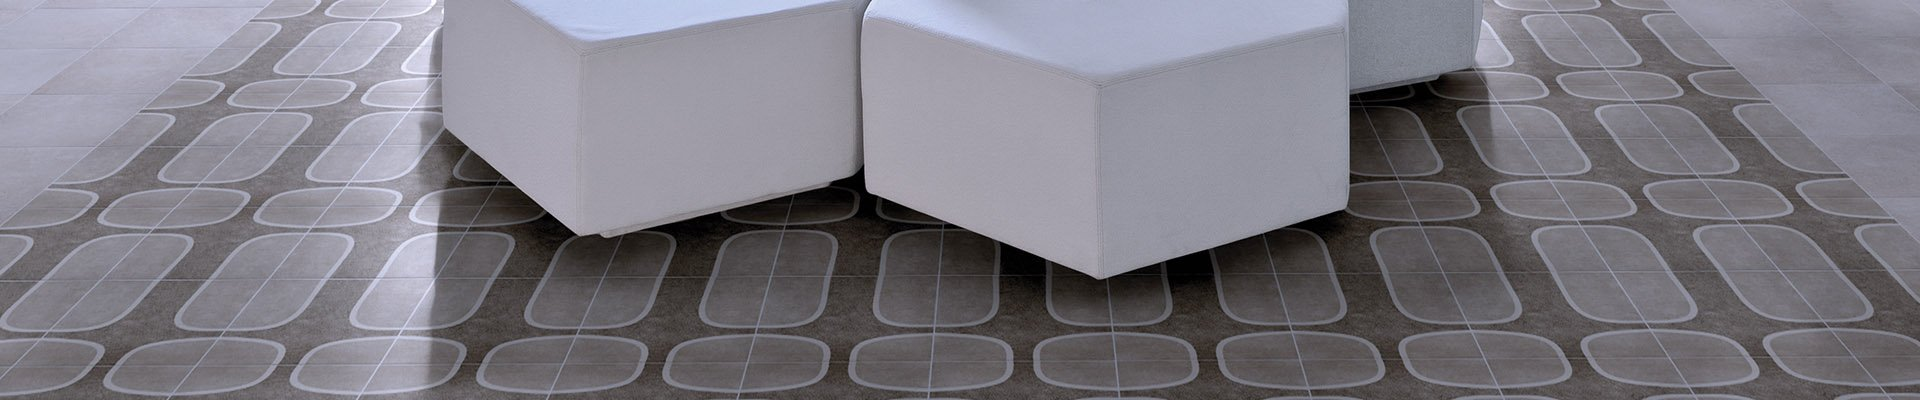 Finish Line Ceramic / Porcelain Rio 21 - An interpretation very contemporary and authorial of the hydraulic tile. Designs in geometric patterns inspired in icons of the wonderful city. 